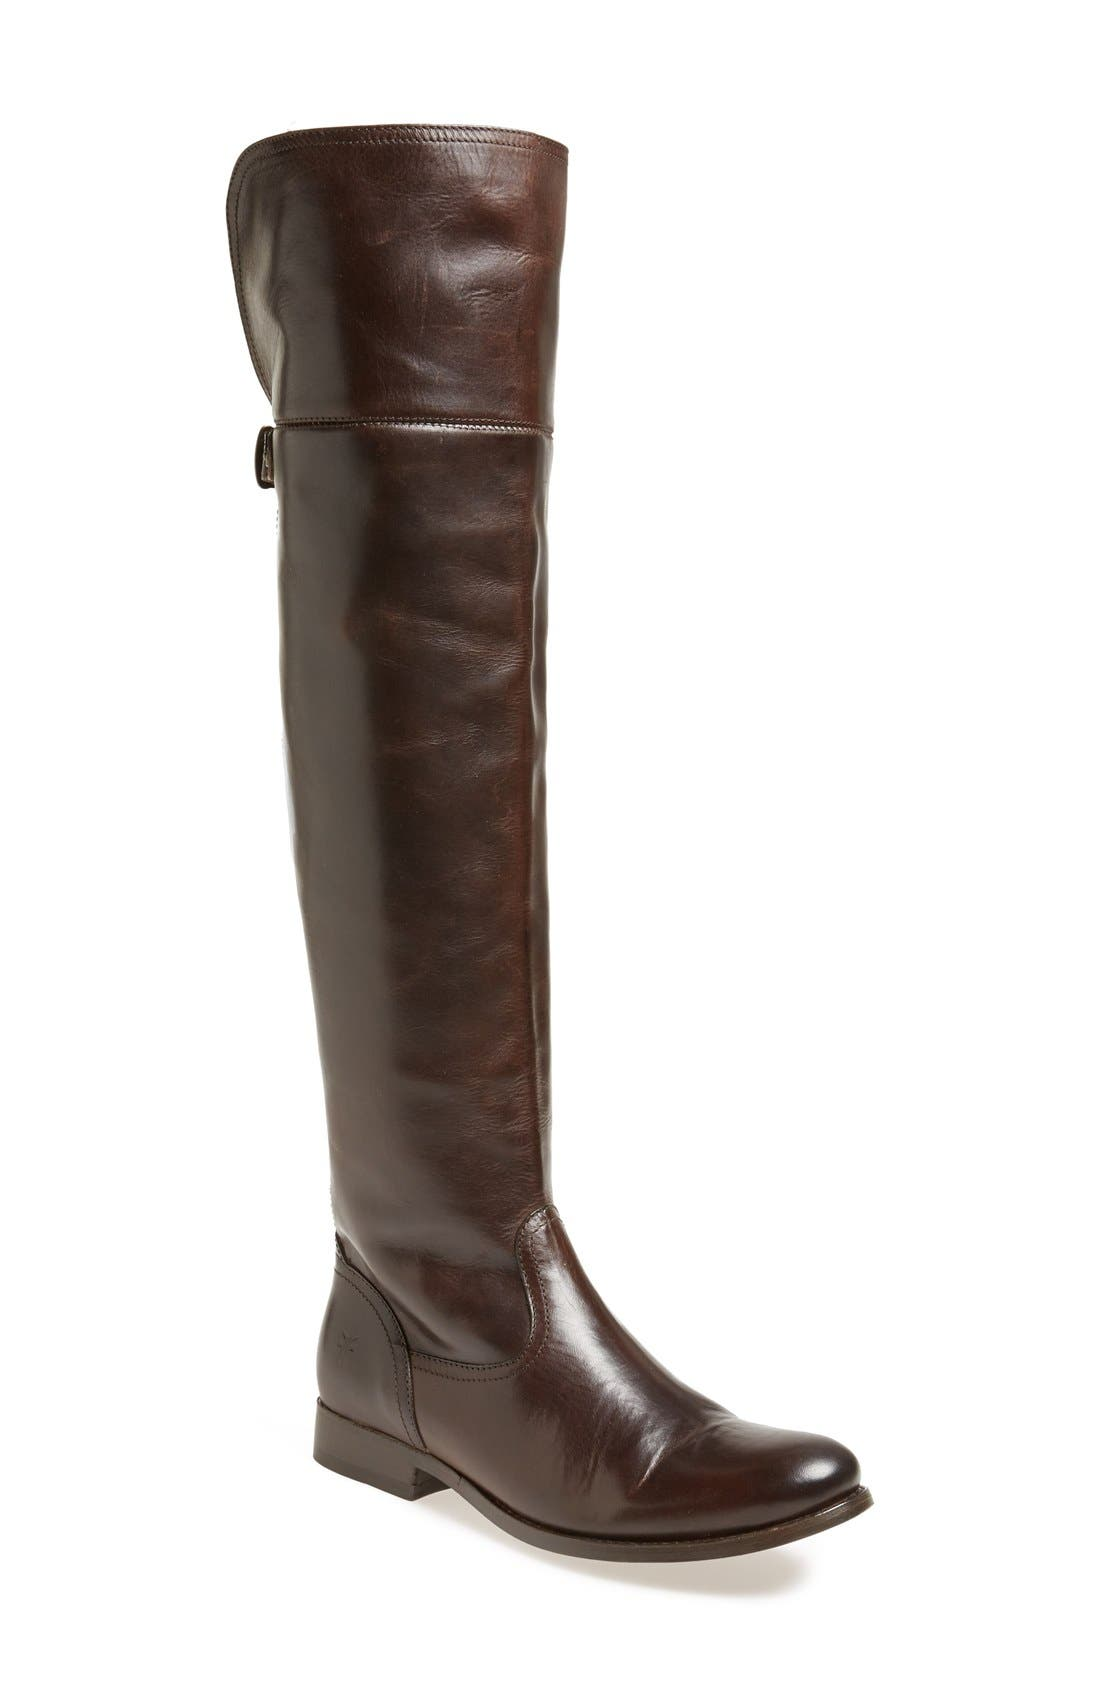 Alternate Image 1 Selected - Frye 'Melissa' Over the Knee Boot